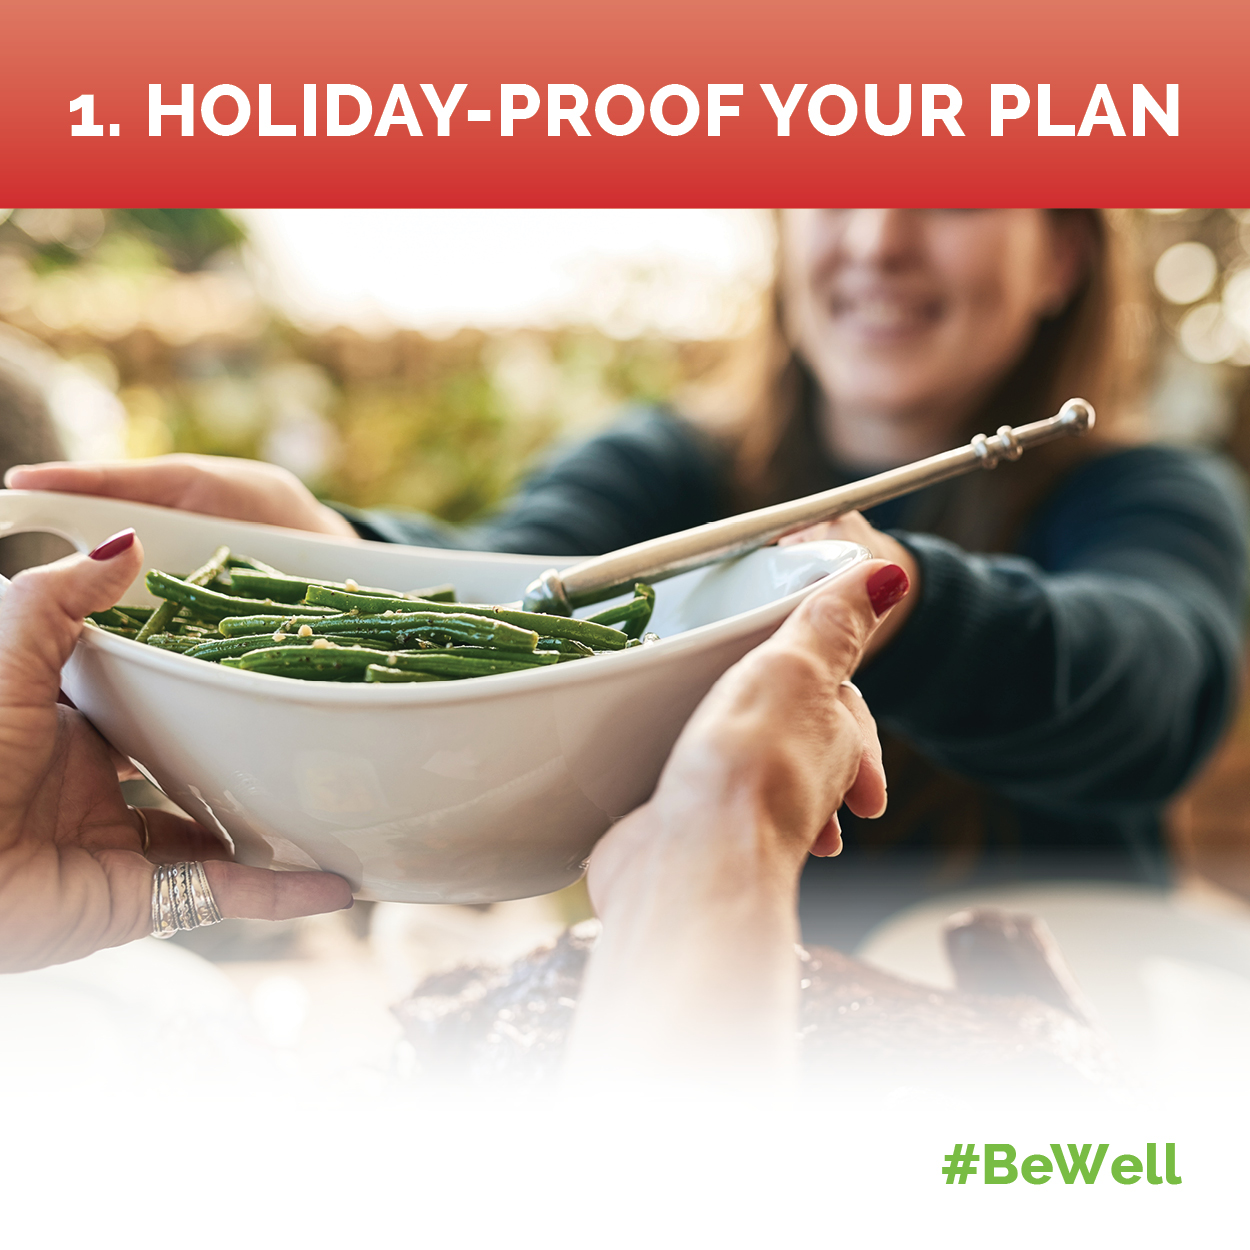 1. Holiday-Proof Your Plan